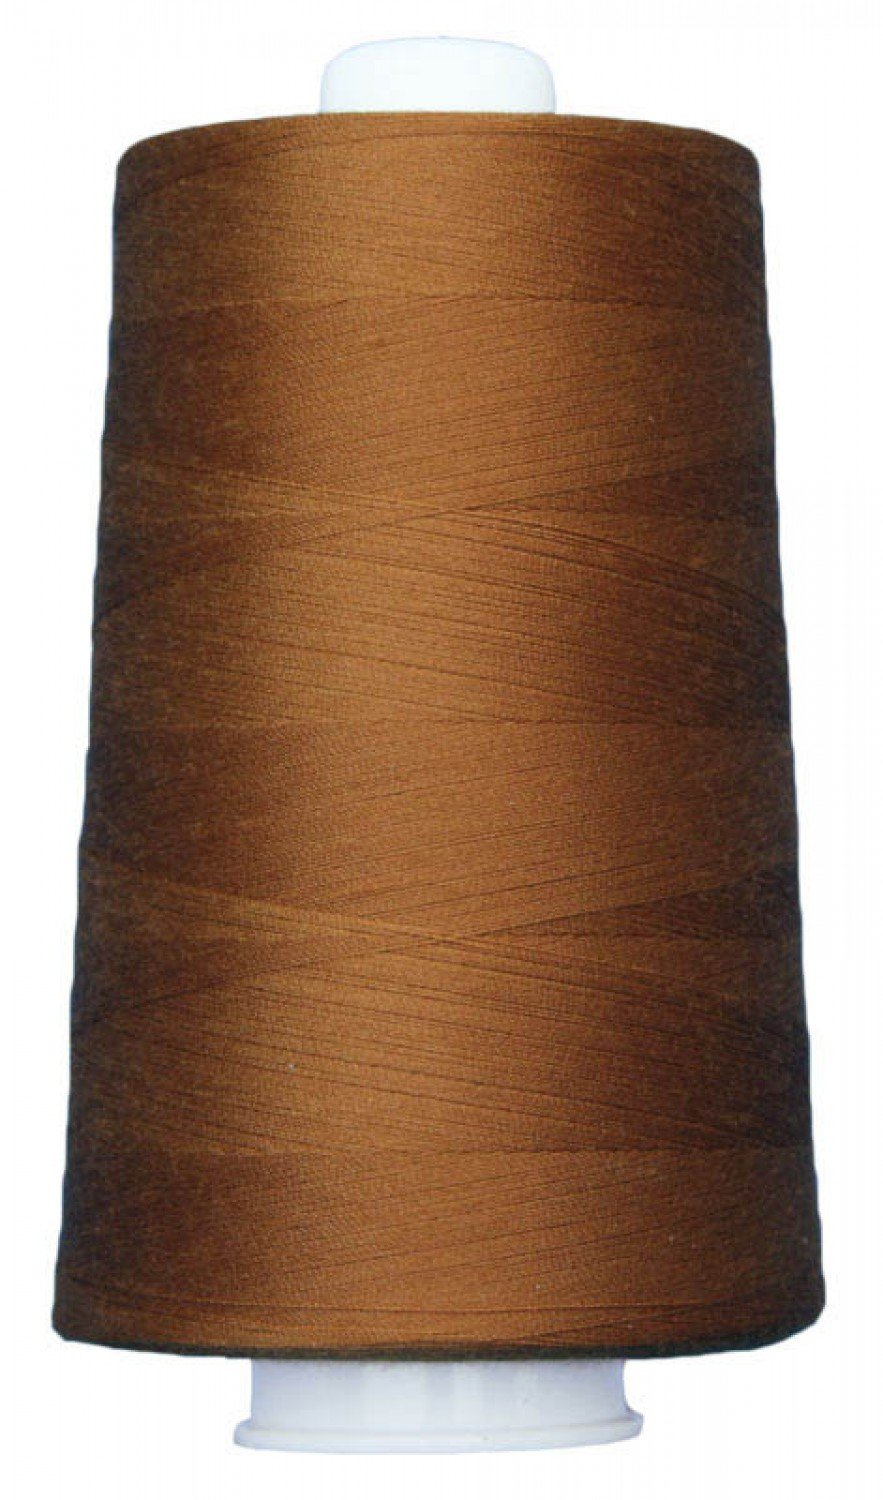 OMNI Polyester Thread 40 wt 6000 yds 3028 Ginger Spice by Superior